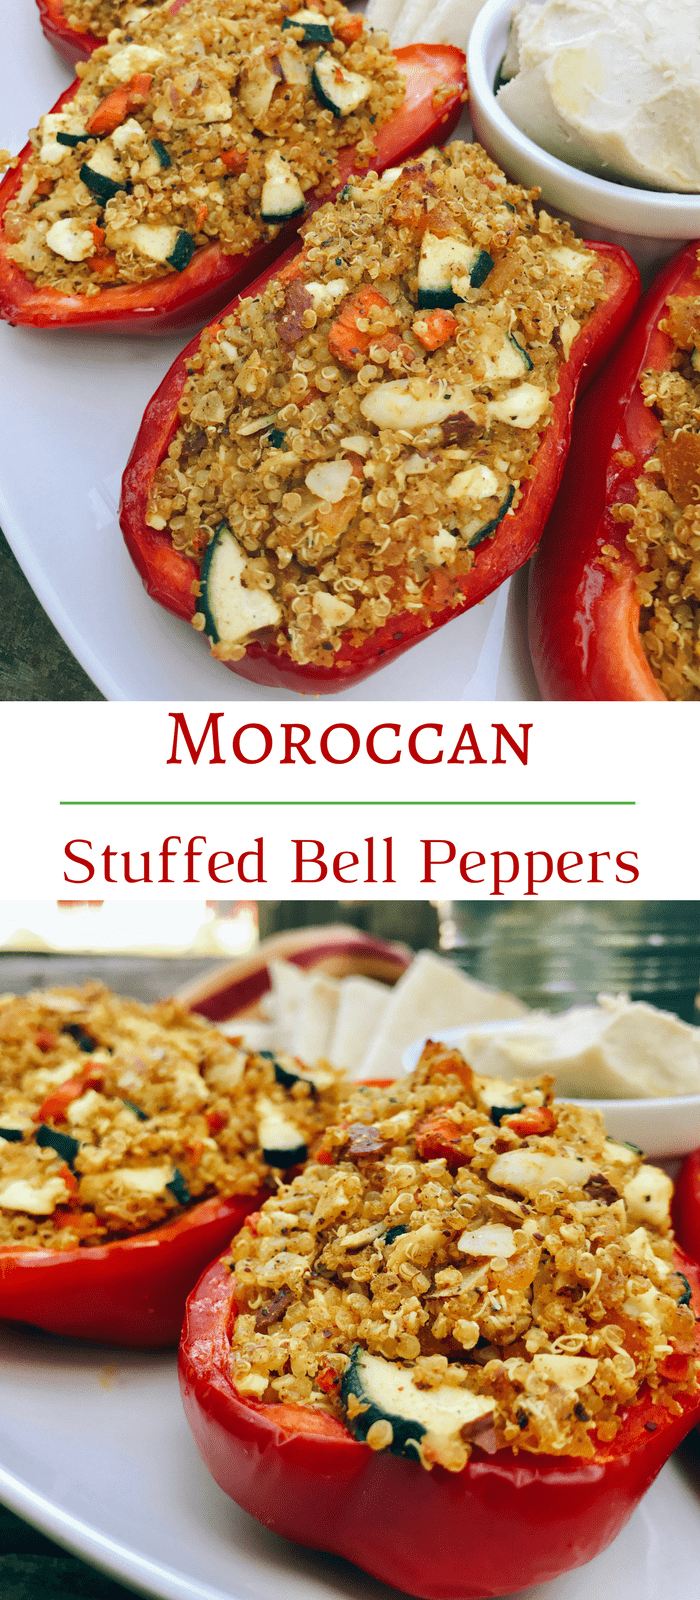 Moroccan Stuffed Bell Peppers with Quinoa, turmeric, and Feta - Vegetarian, Gluten free